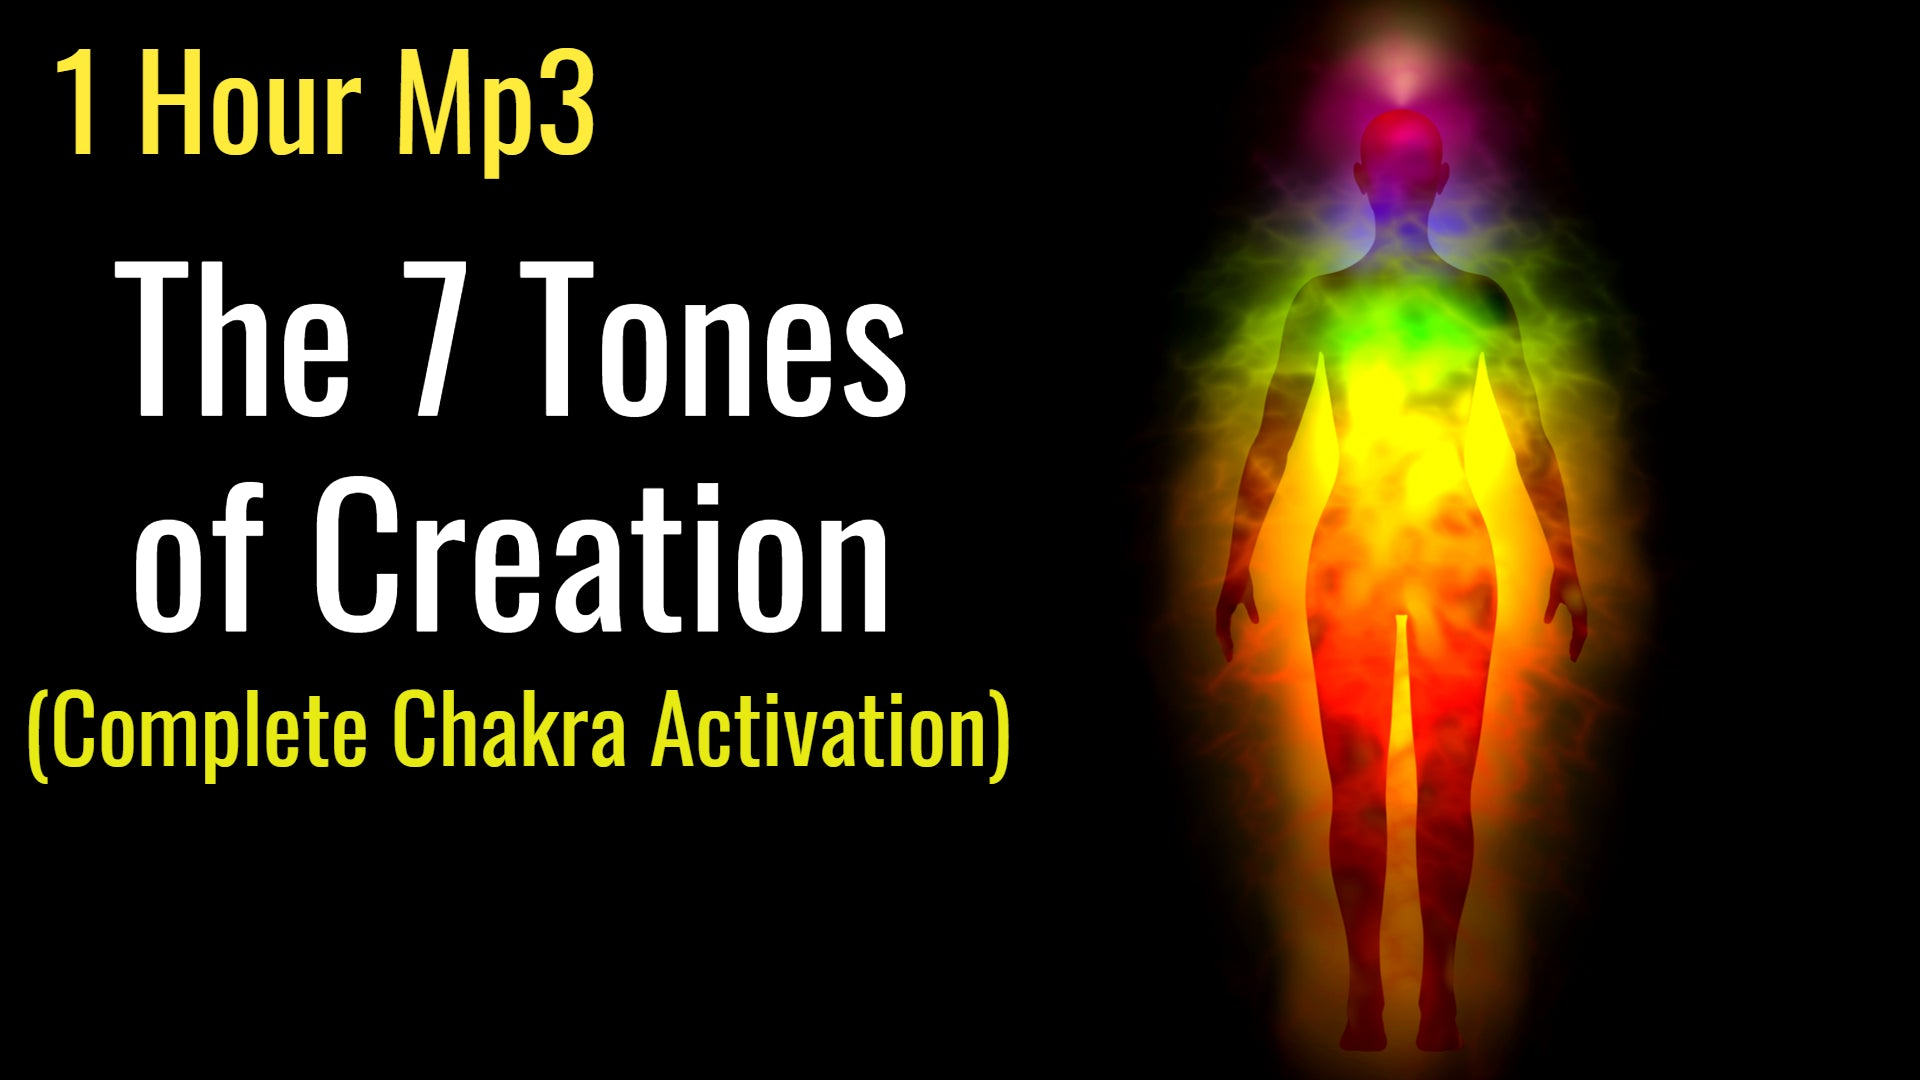 The 7 Tones of Creation  Complete Chakra Activation (God's Healing Frequencies) Solfeggio Healing 1 Hour